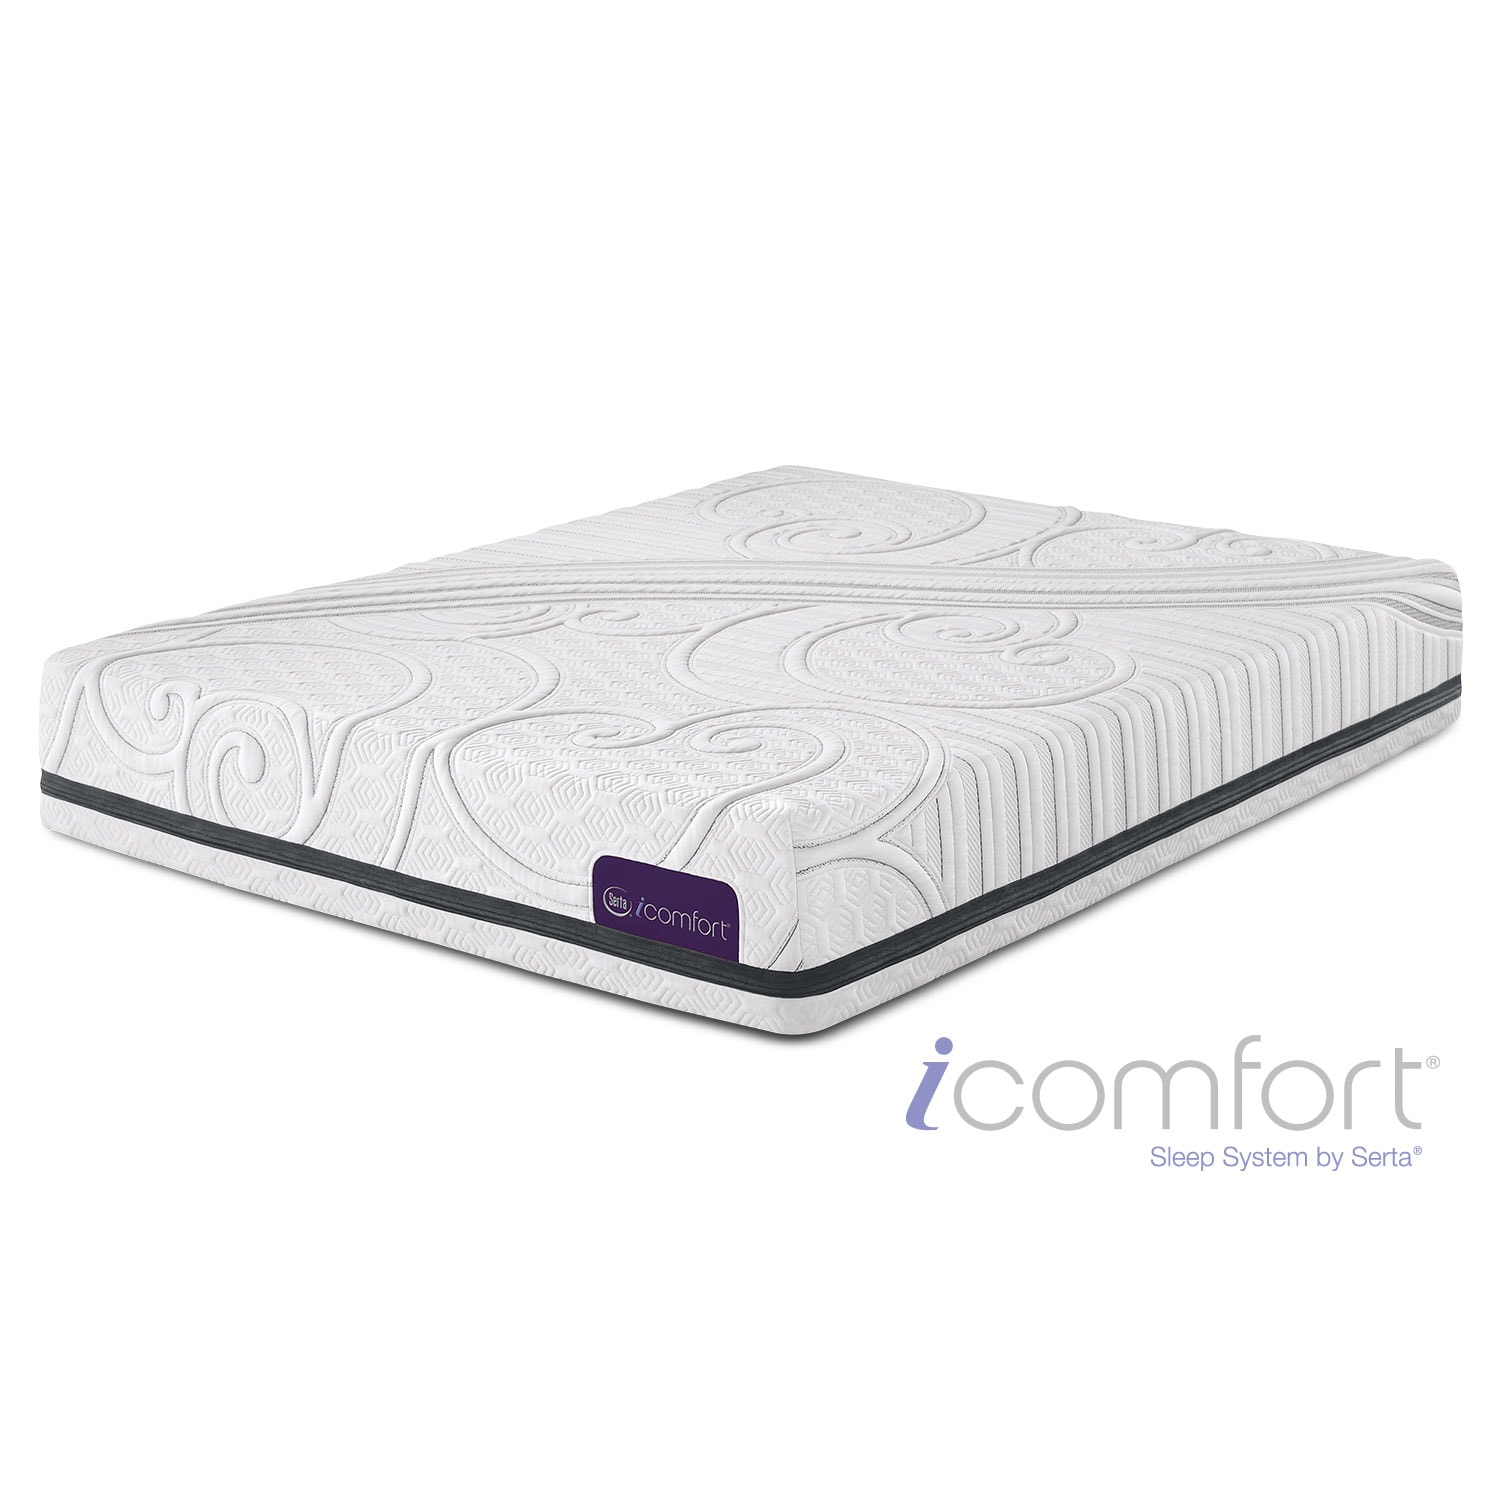 Mattresses and Bedding - Savant III Plush Twin XL Mattress